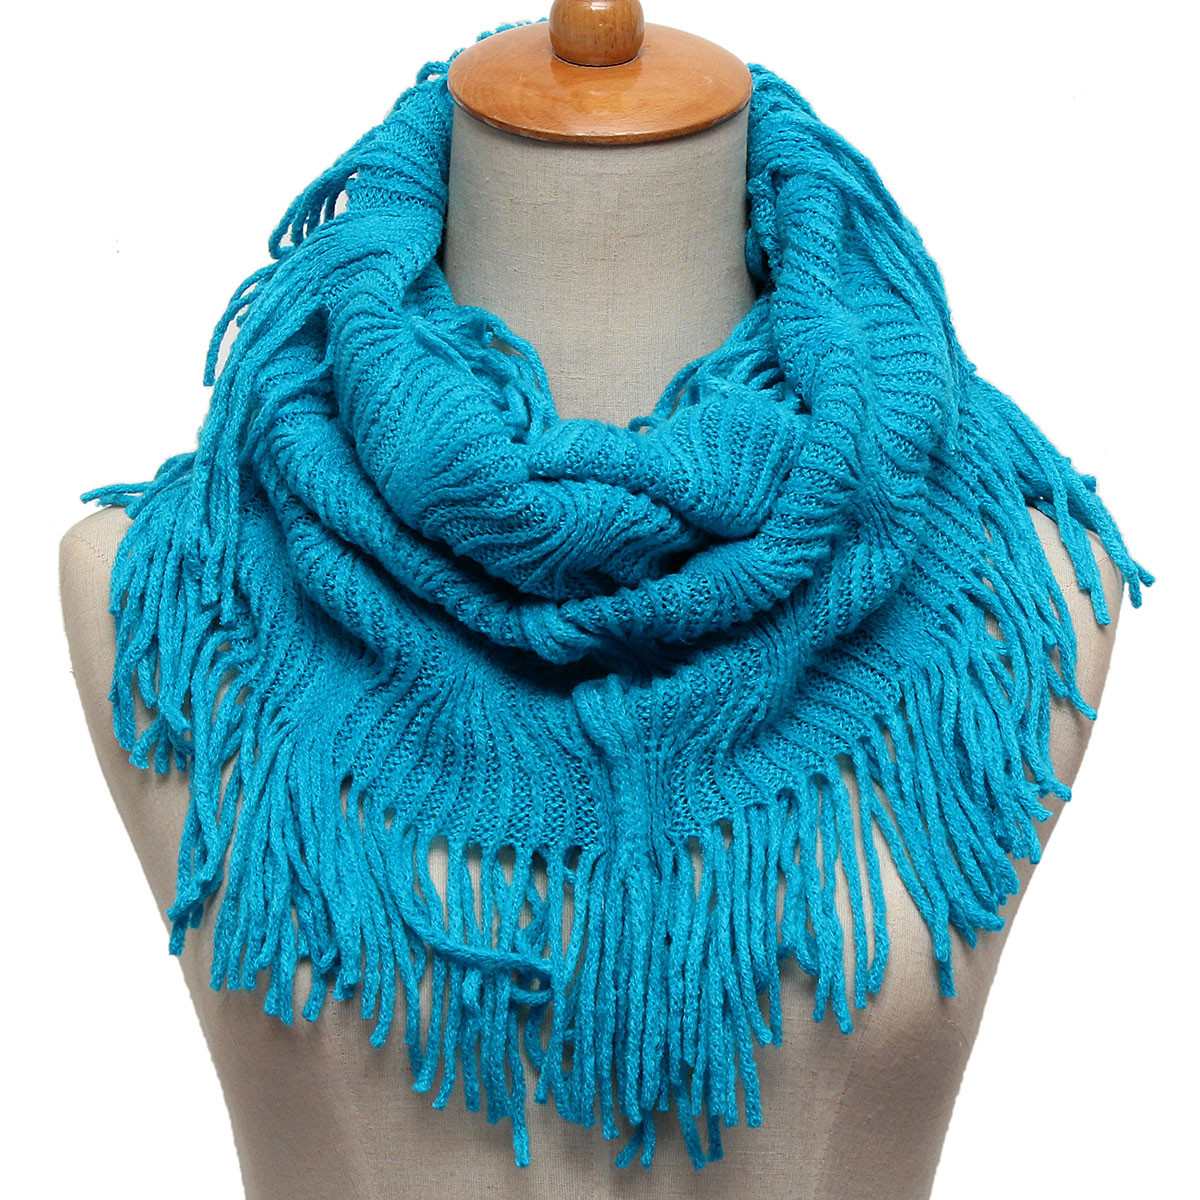 Best Of Women La S Two Circle Tassel Cable Knit Cowl Neck Knit Circle Scarf Of Brilliant 47 Photos Knit Circle Scarf